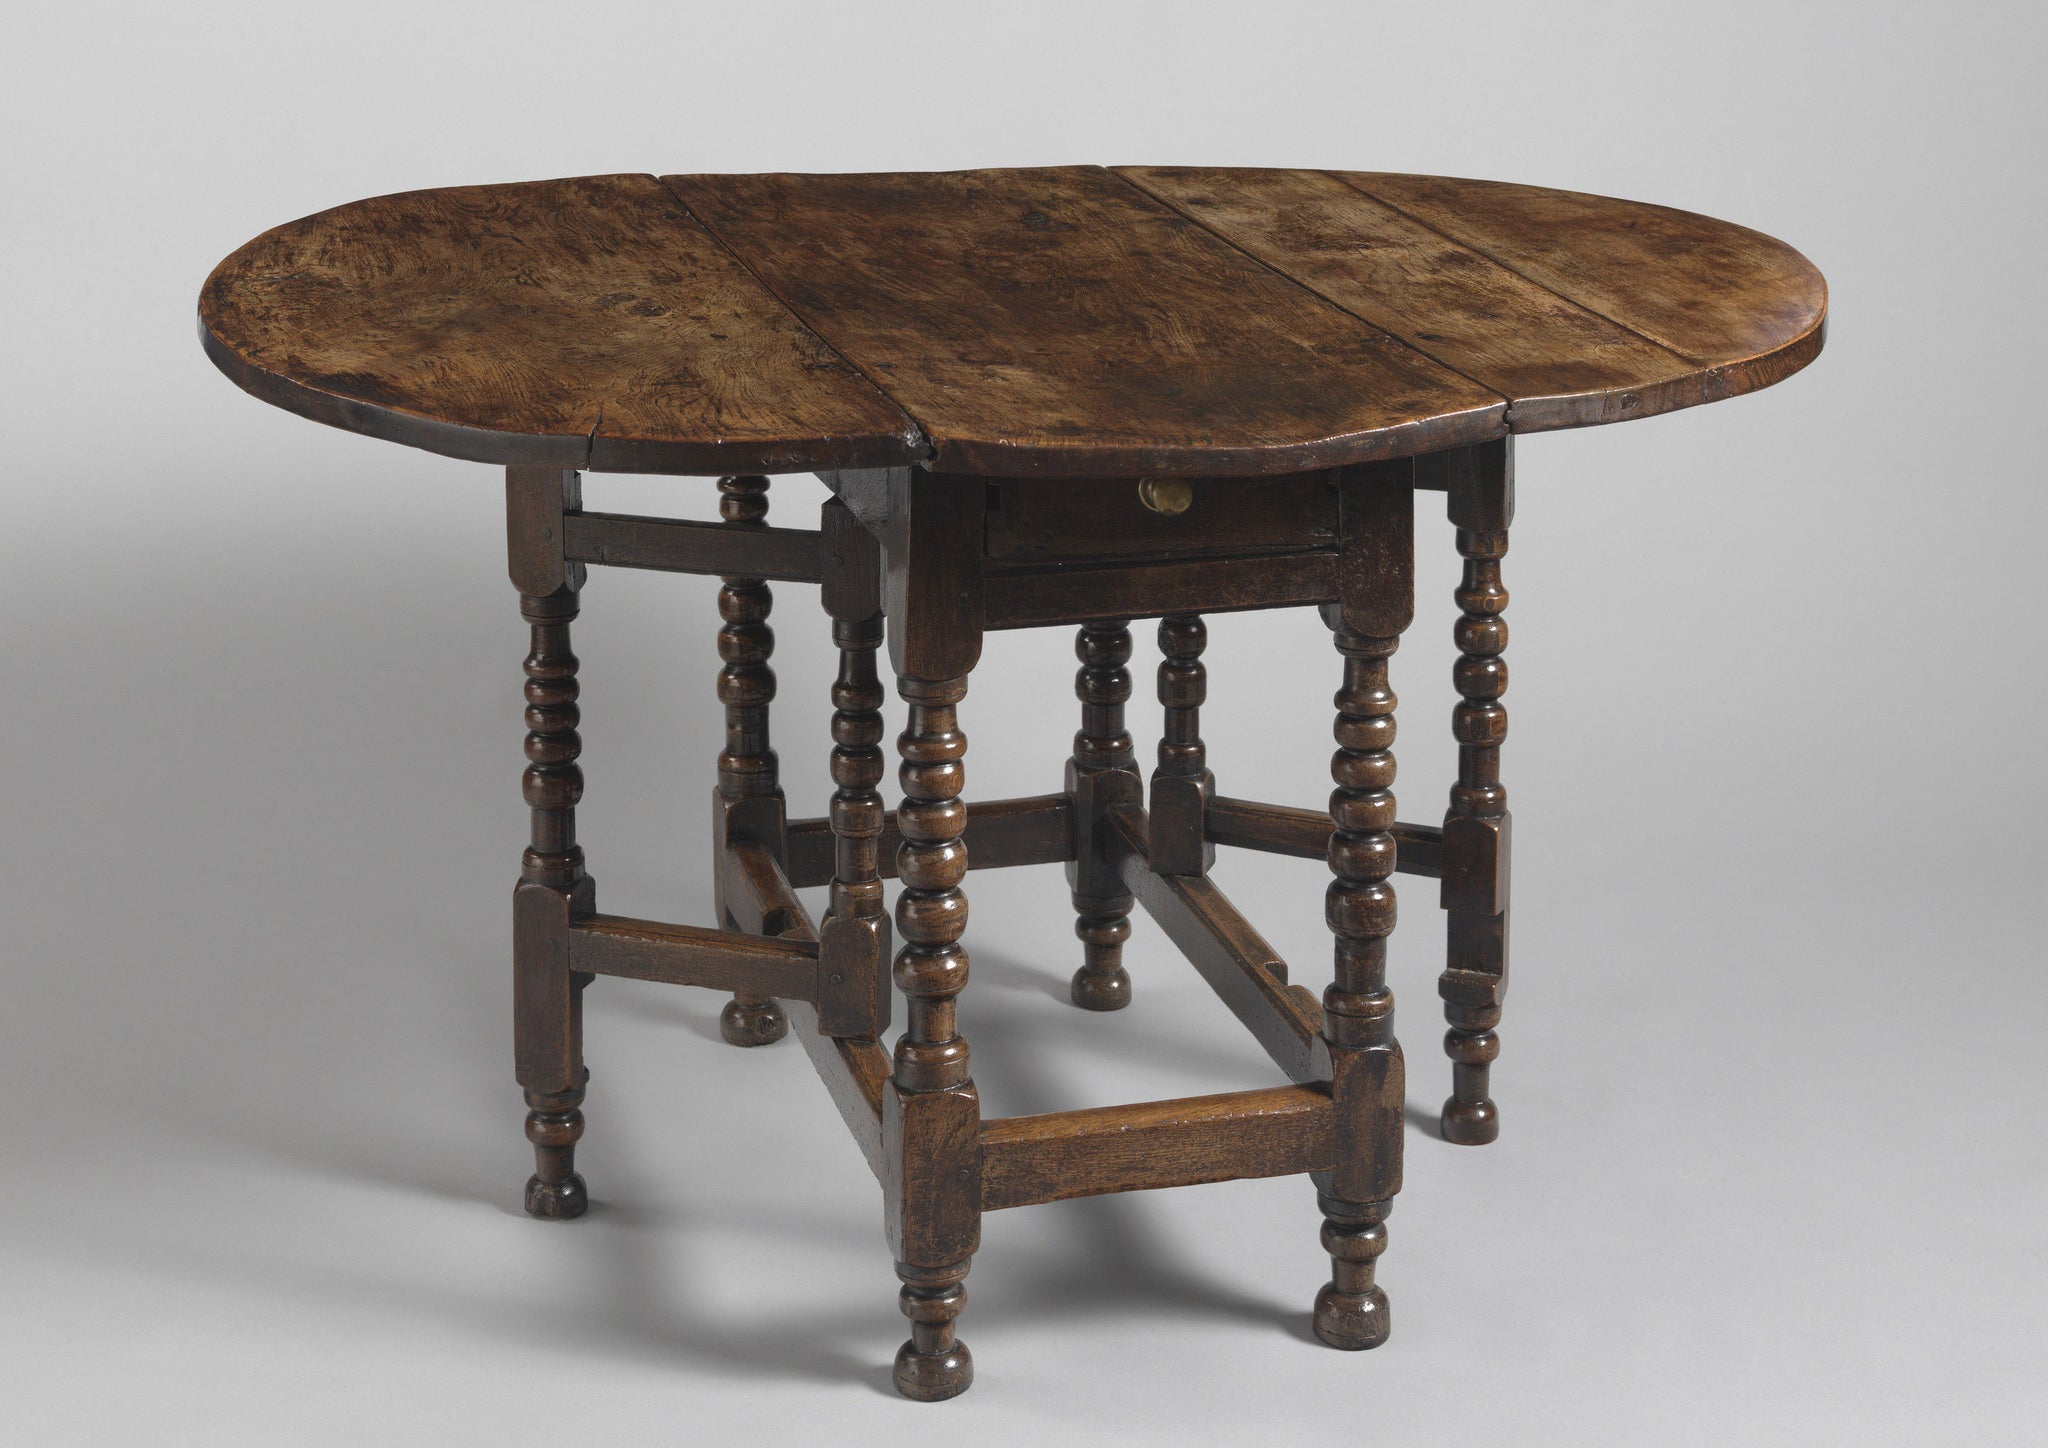 Characterful Early Oval Drop Leaf Table